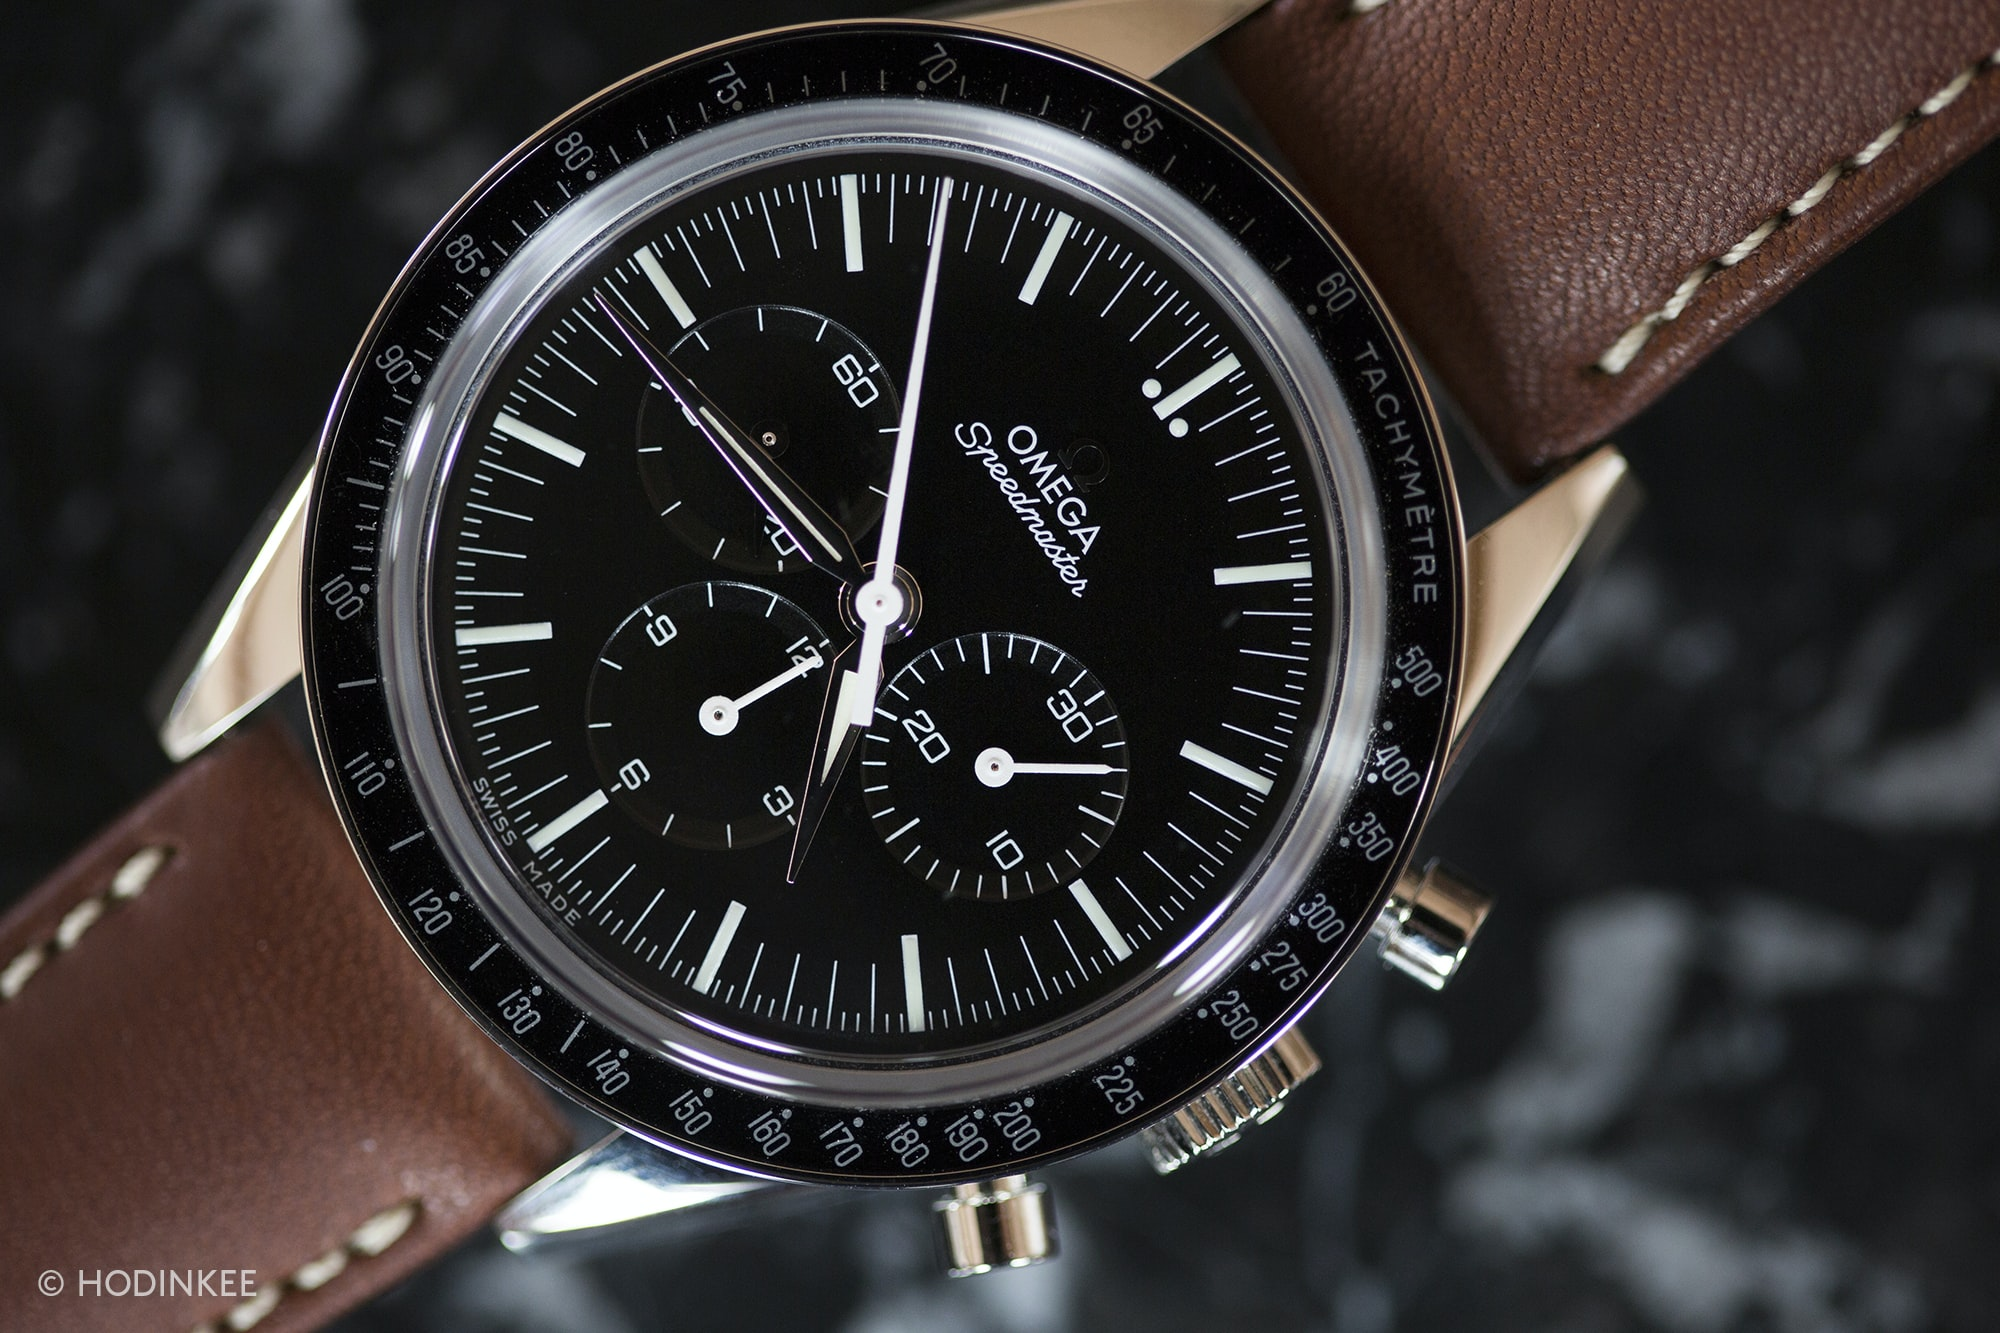 Omega Speedmaster First Omega In Space Review A Week On The Wrist: The Omega Speedmaster 'First Omega In Space' A Week On The Wrist: The Omega Speedmaster 'First Omega In Space' 588A0142 copy